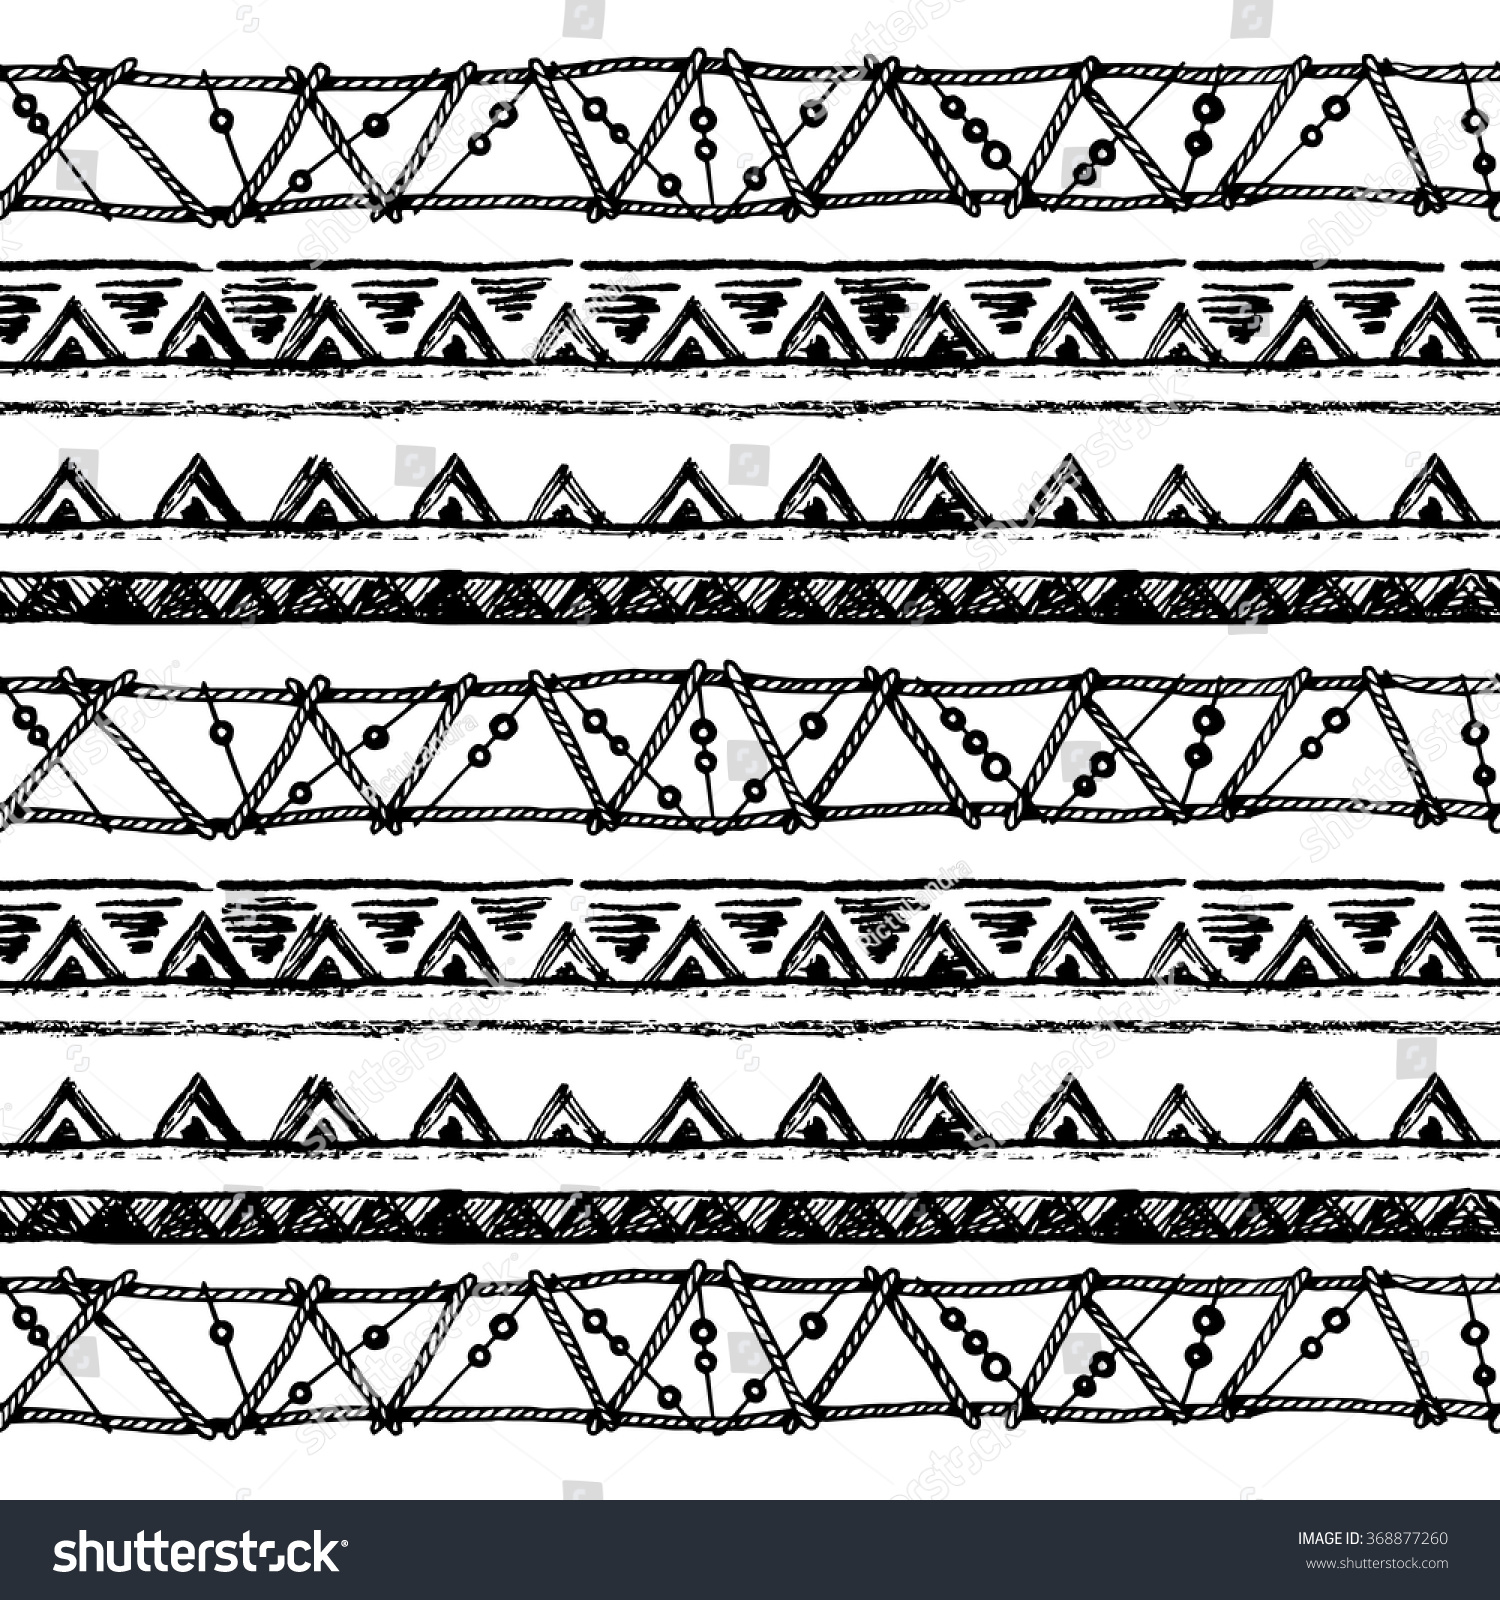 e9deb4255 Ethnic seamless pattern in native style. Tribal vector seamless pattern  with native American Indian symbols.